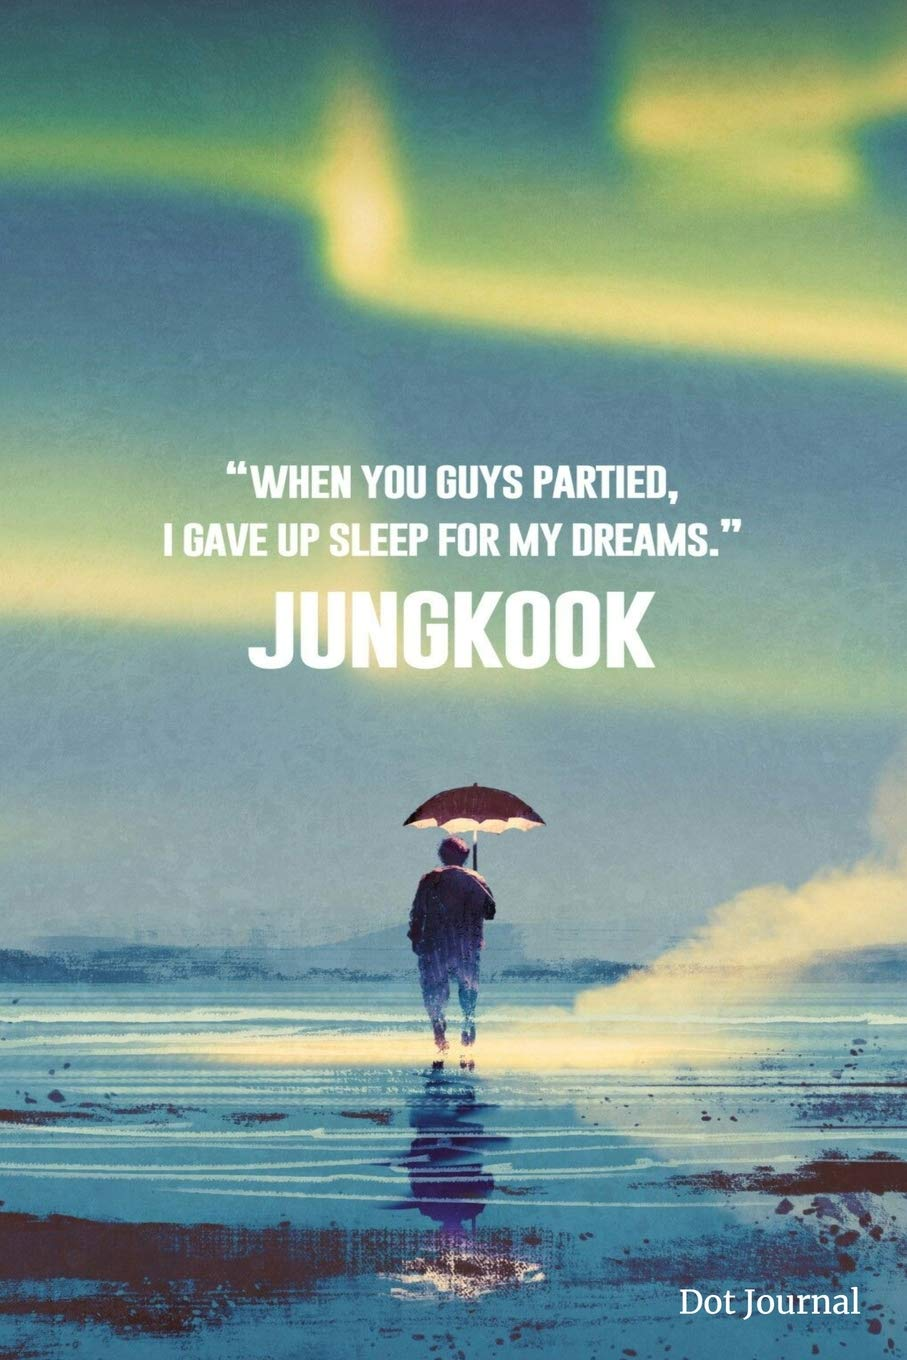 Jungkook Dot Journal: When You Guys Partied, I Gave Up Sleep